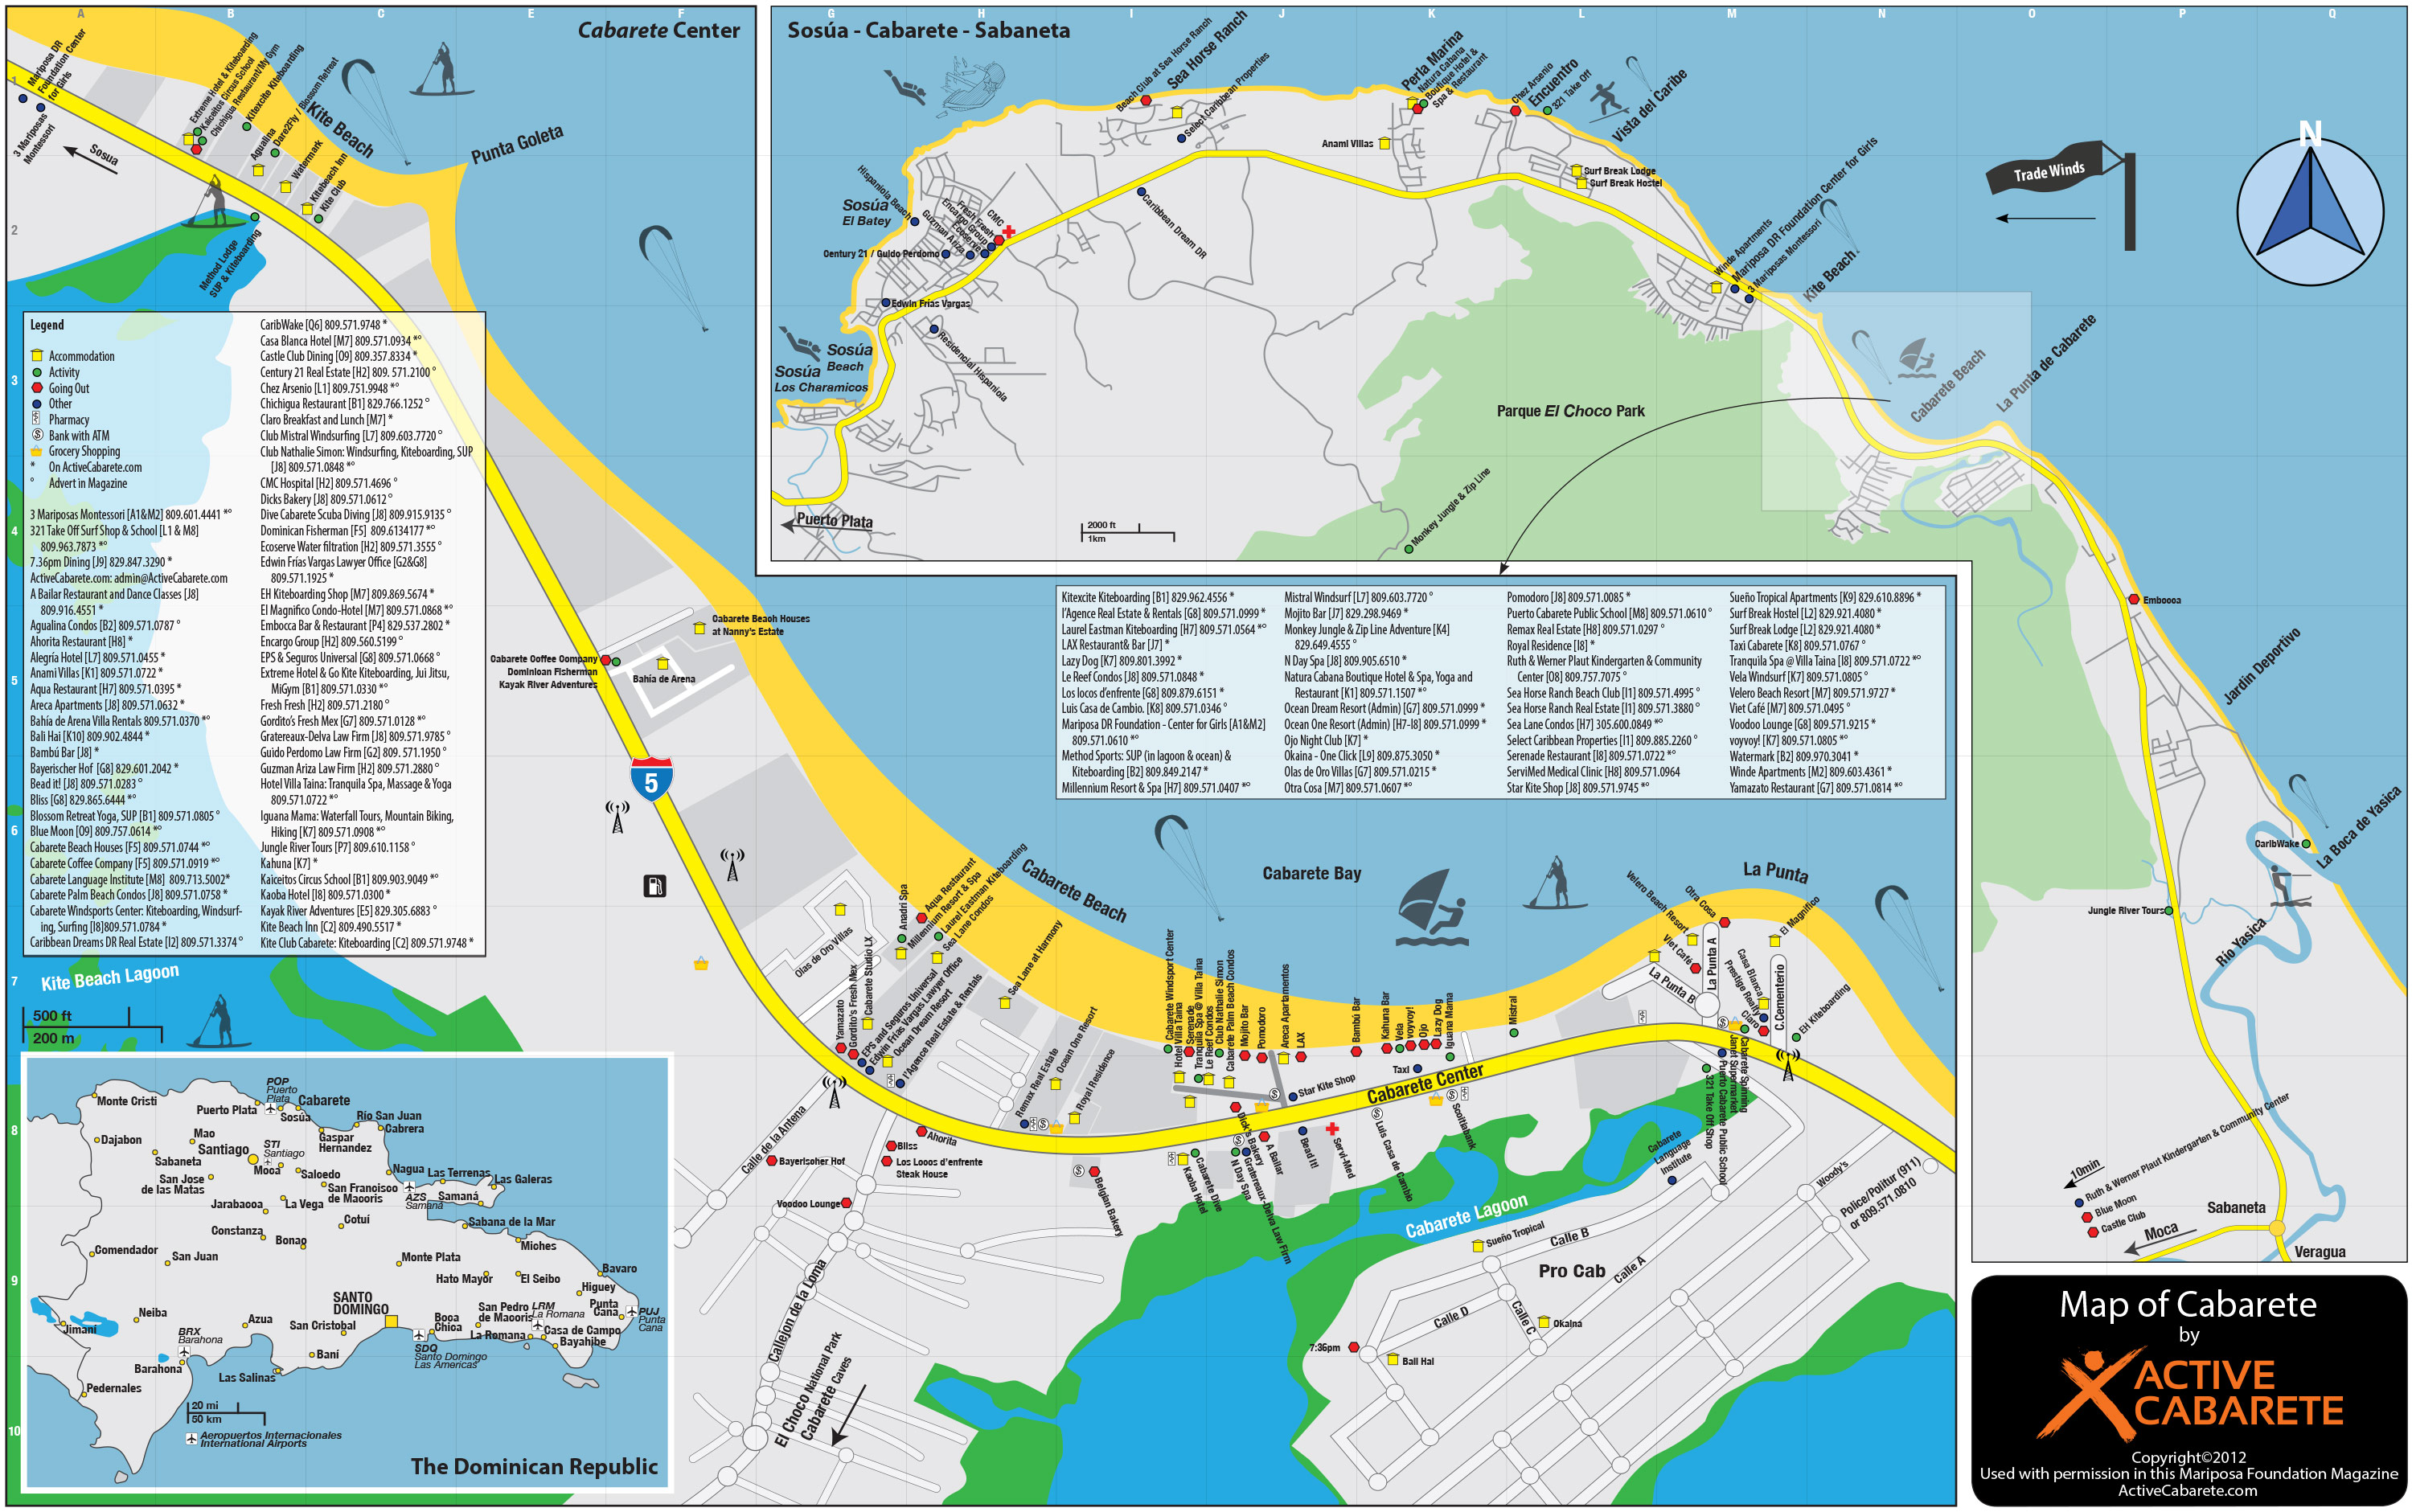 Active Cabarete - Maps of Cabarete, Dominican Republic on